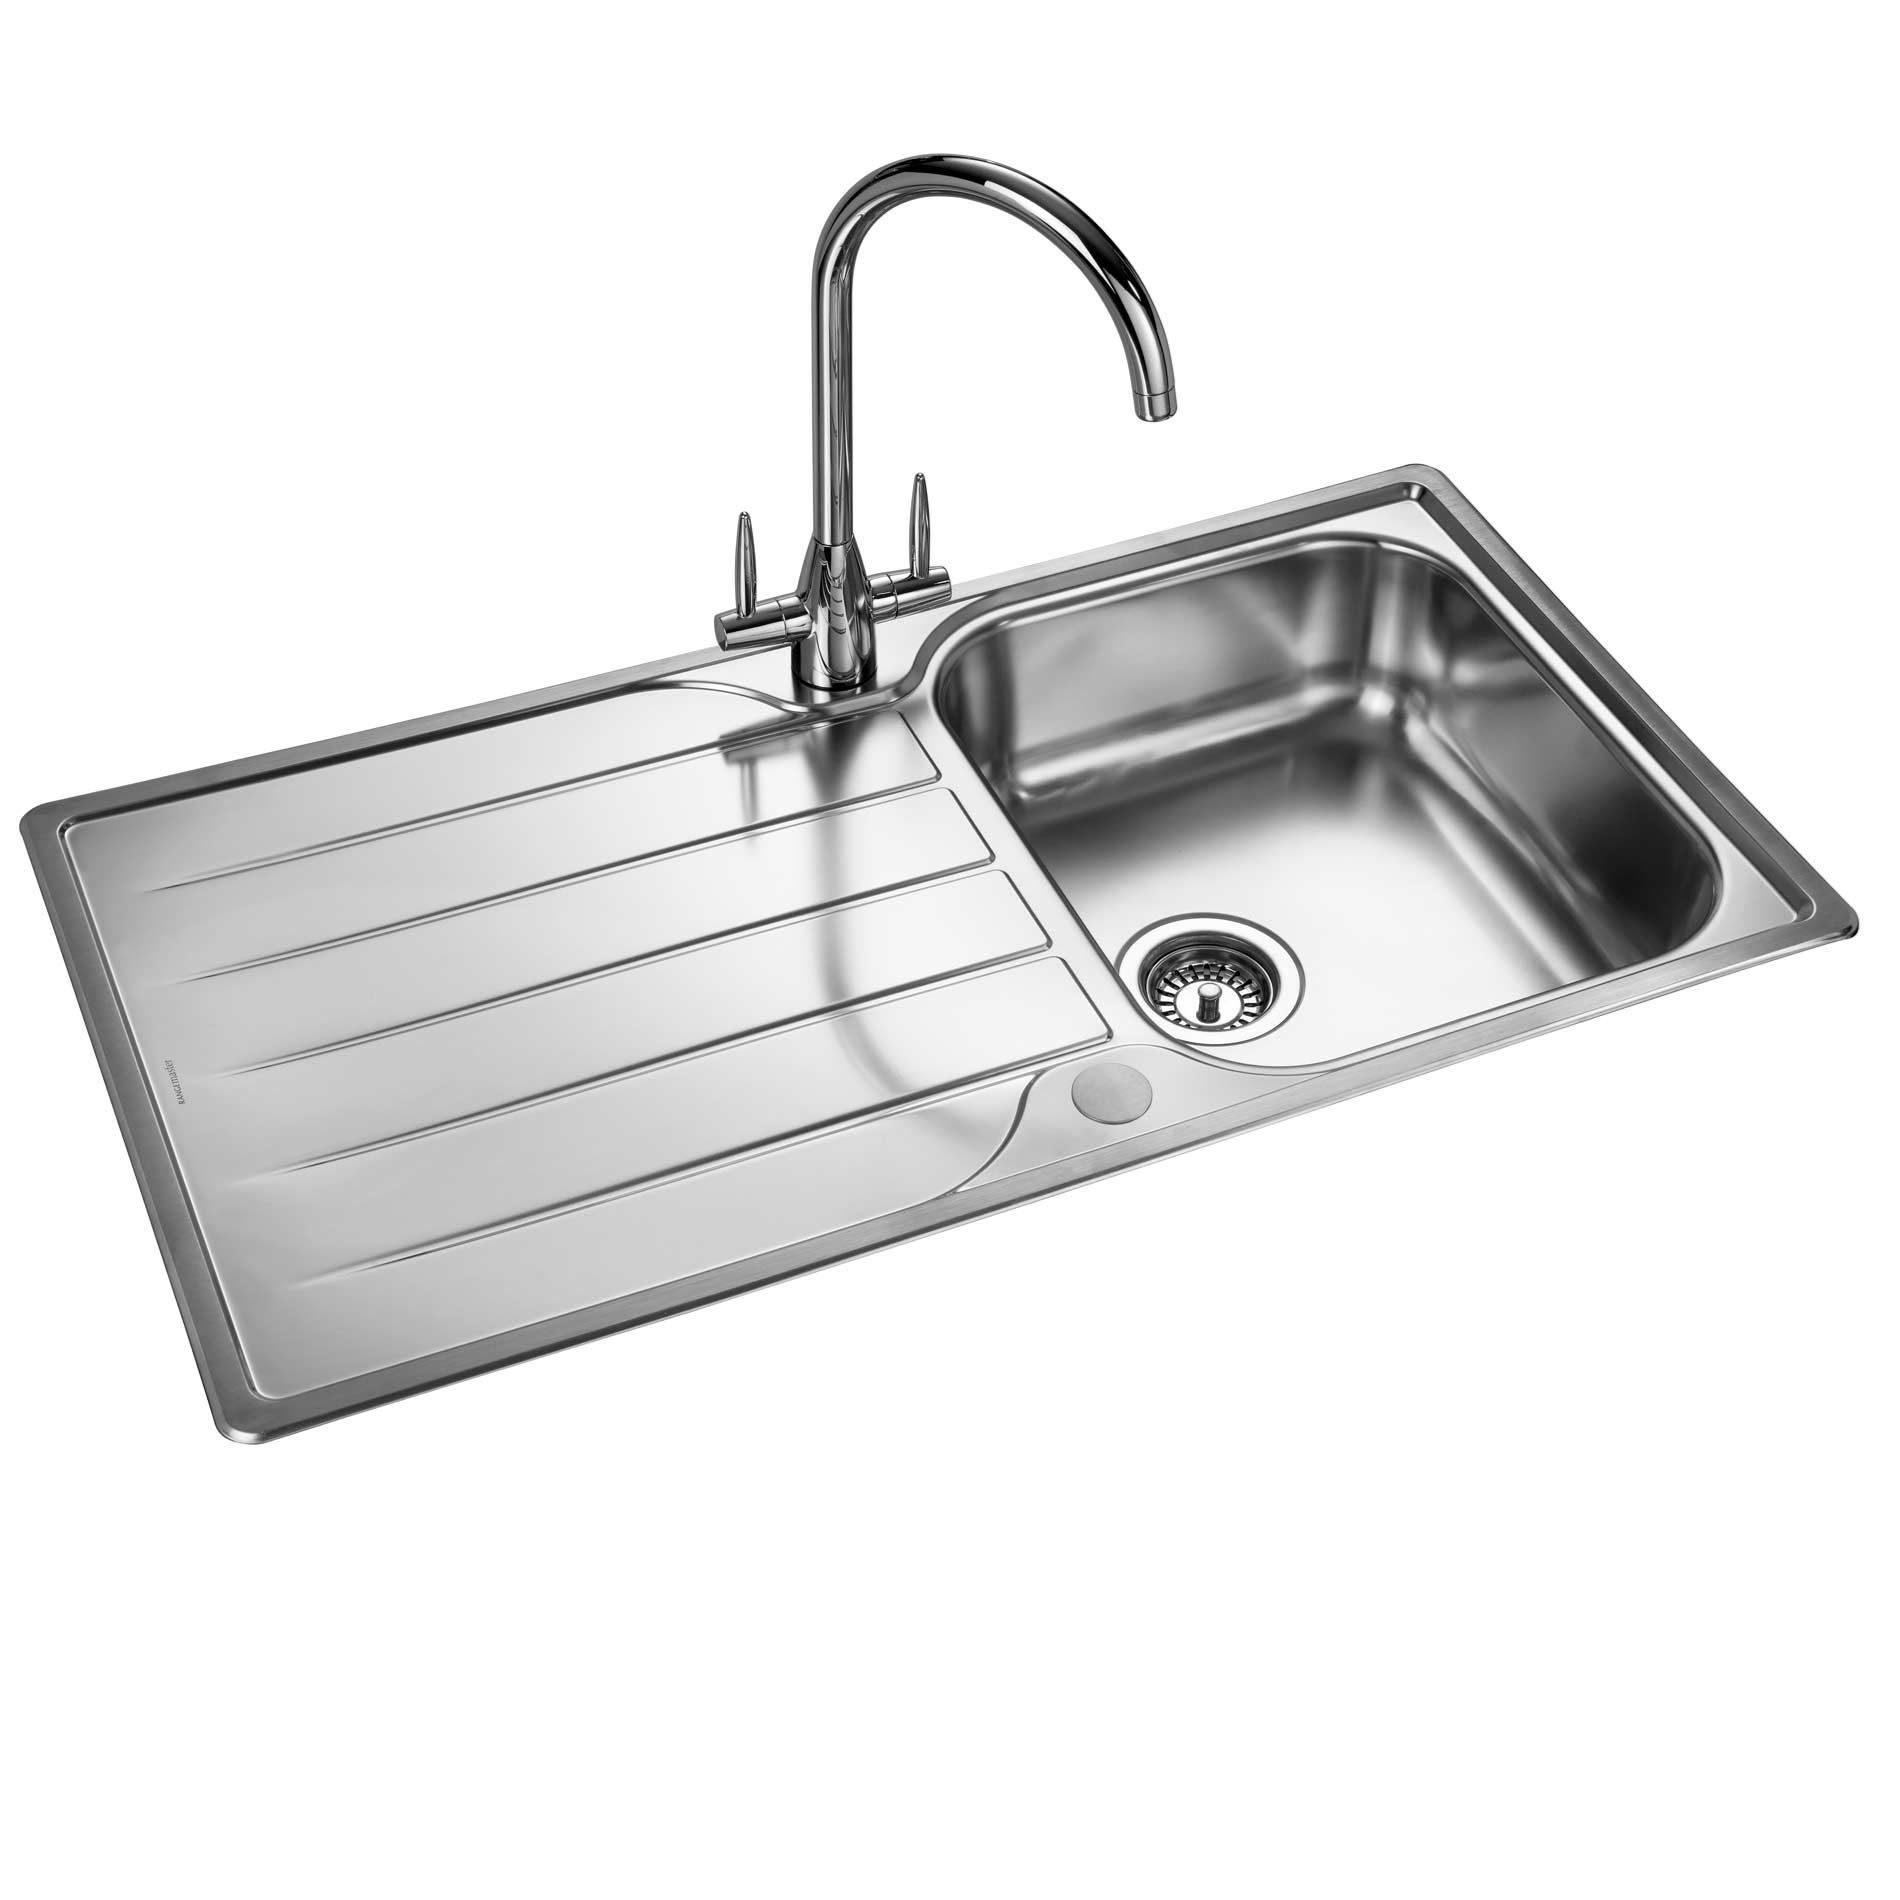 Ordinaire Picture Of Michigan MG9501 Stainless Steel Sink